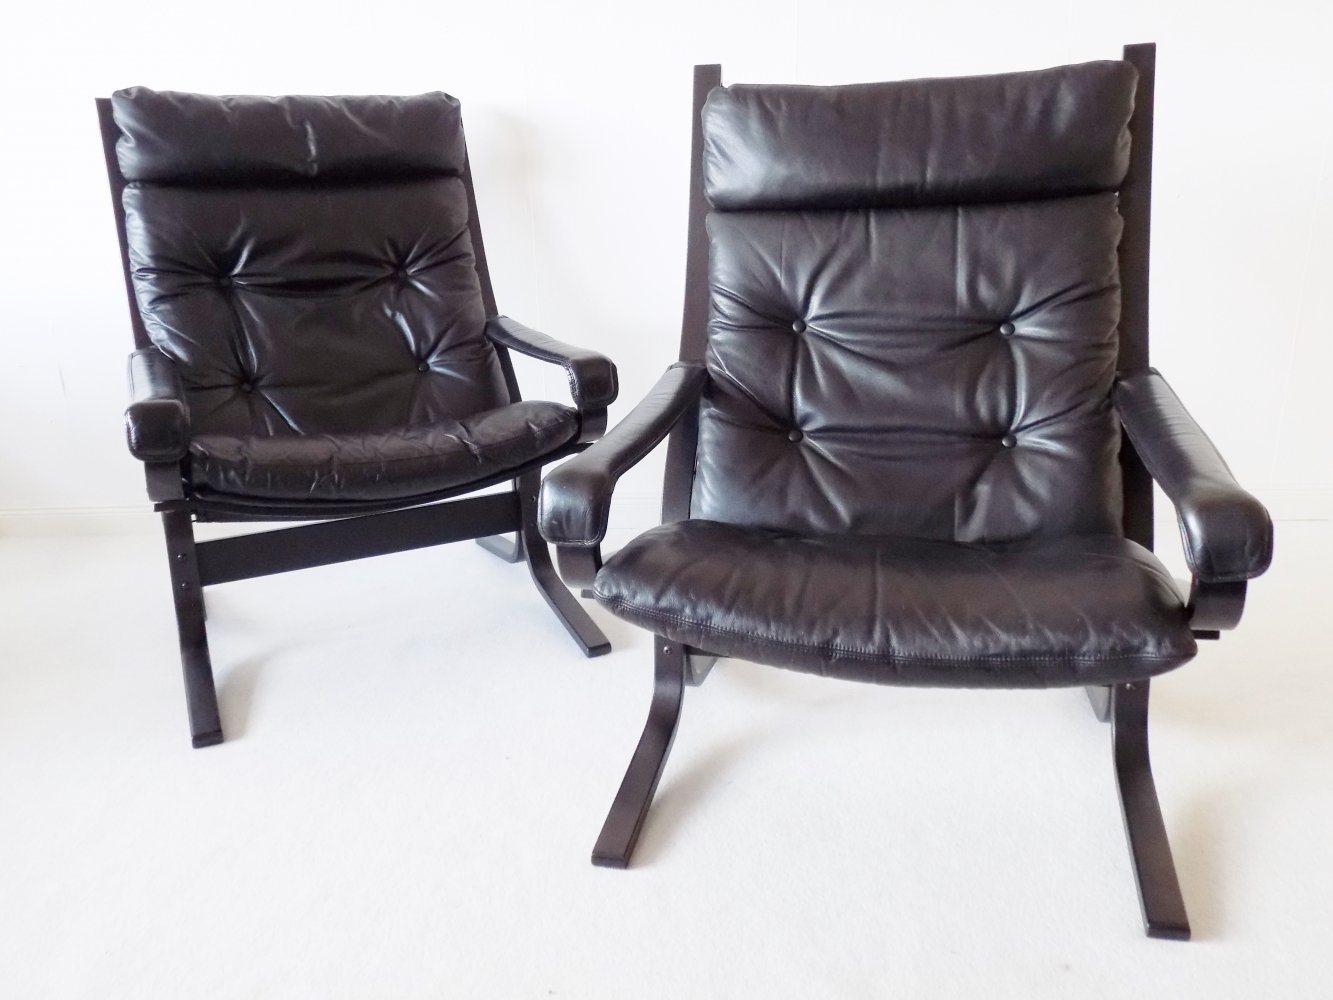 Pair of black leather Siesta lounge chairs by Ingmar Relling for Westnofa, 1960s